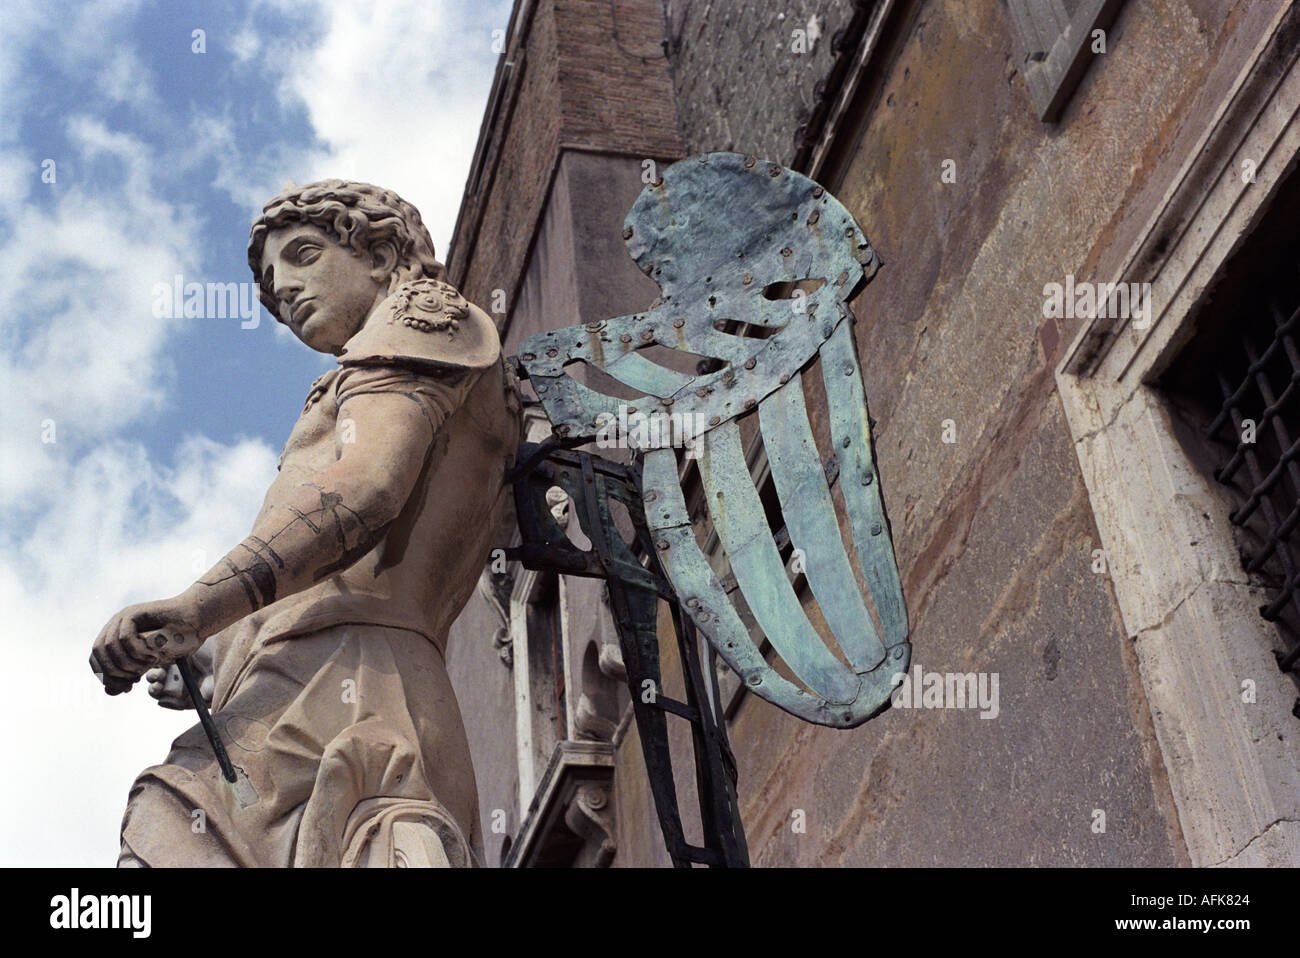 A Michelangelo angel at Castel Sant Angelo in Rome Italy - Stock Image